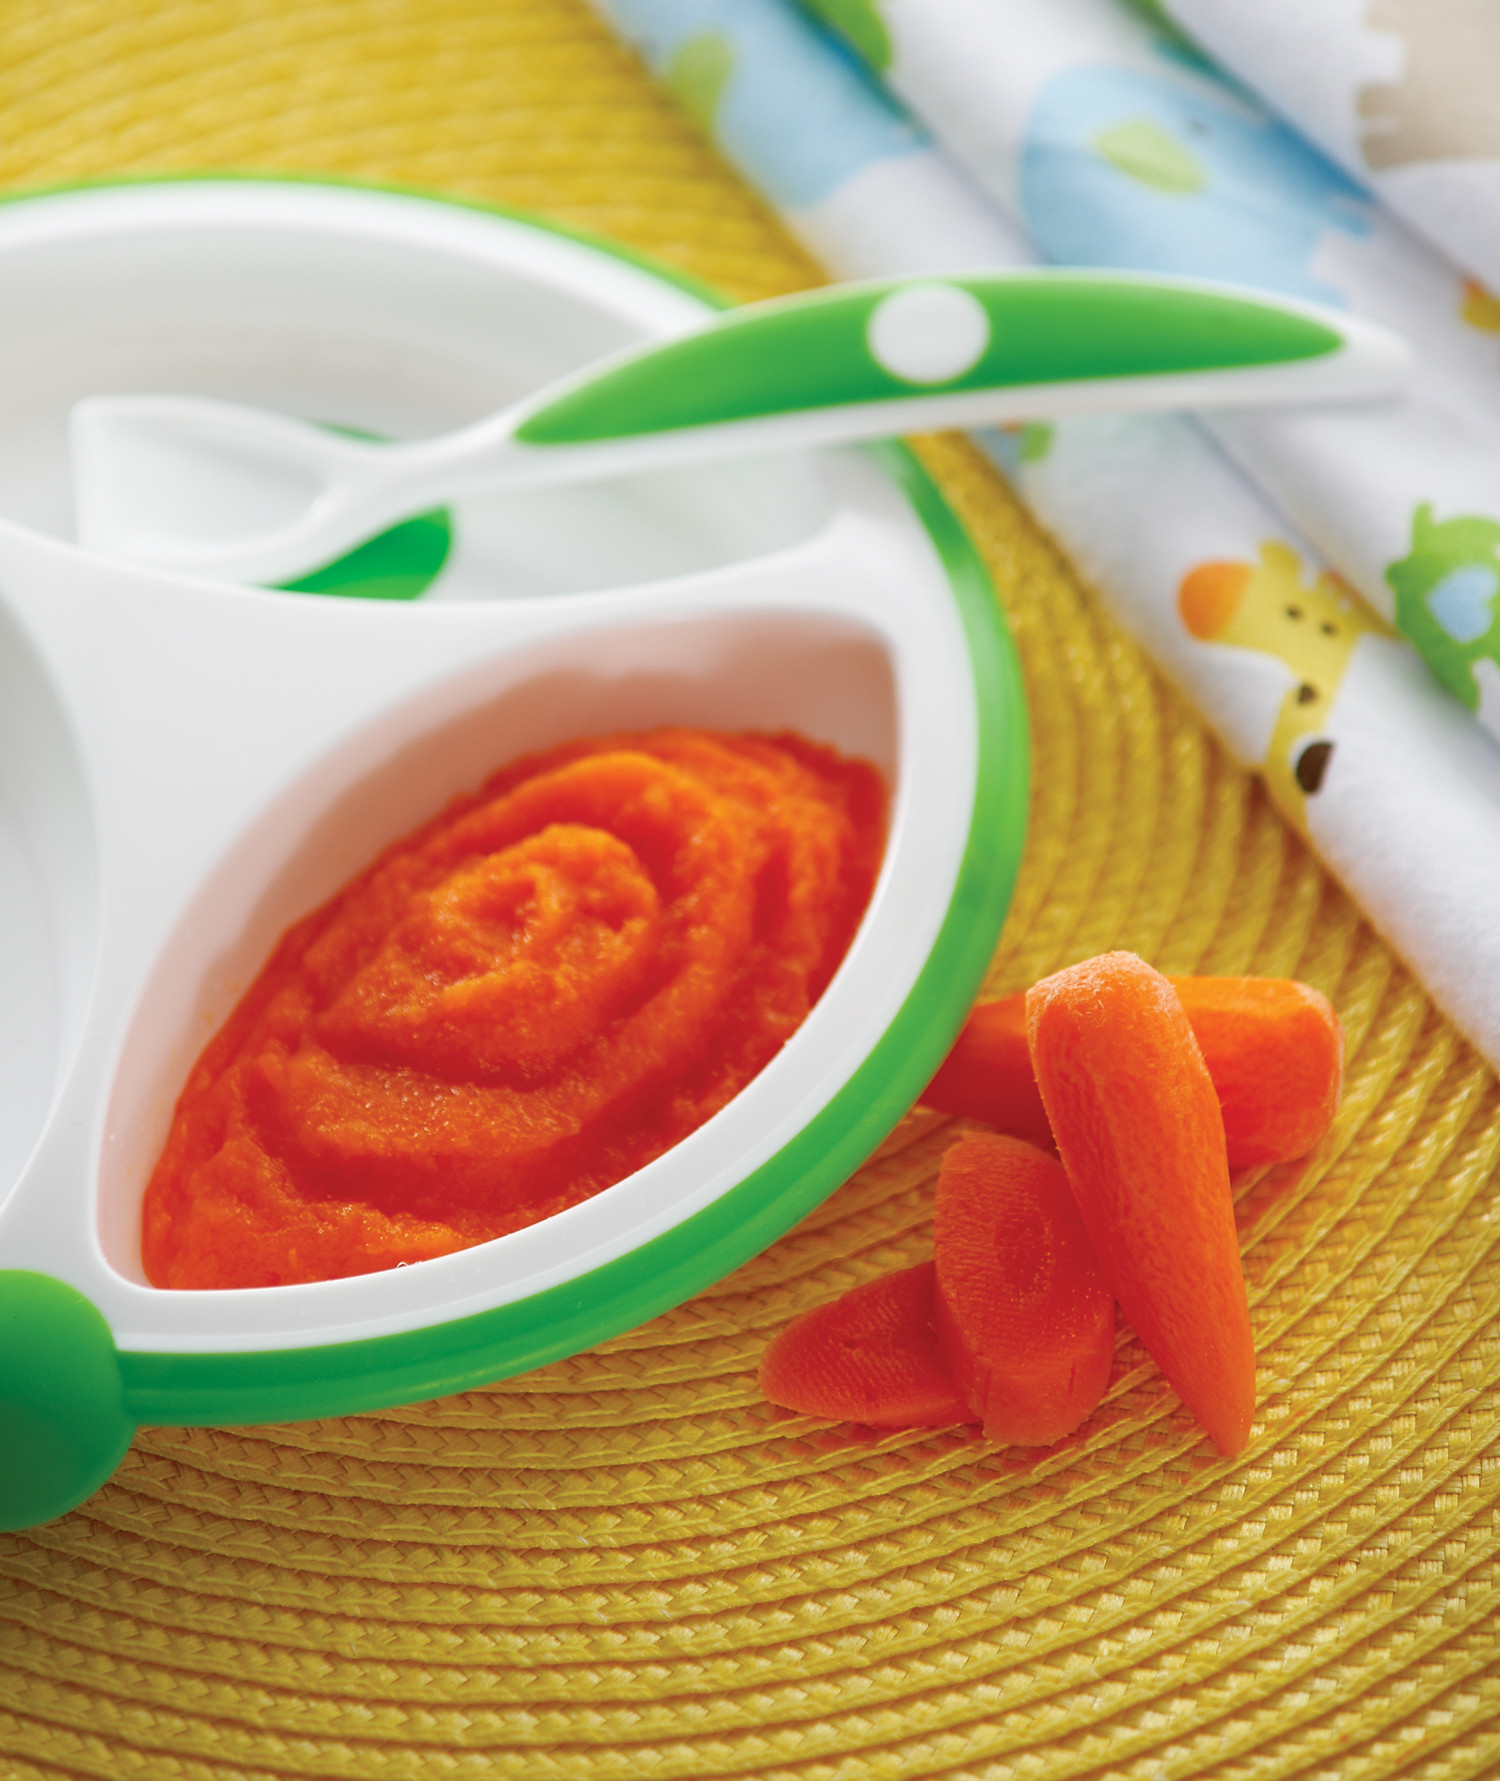 Lifestyle_Solid_Feeding_Plate_Spoon_Carrot_Puree